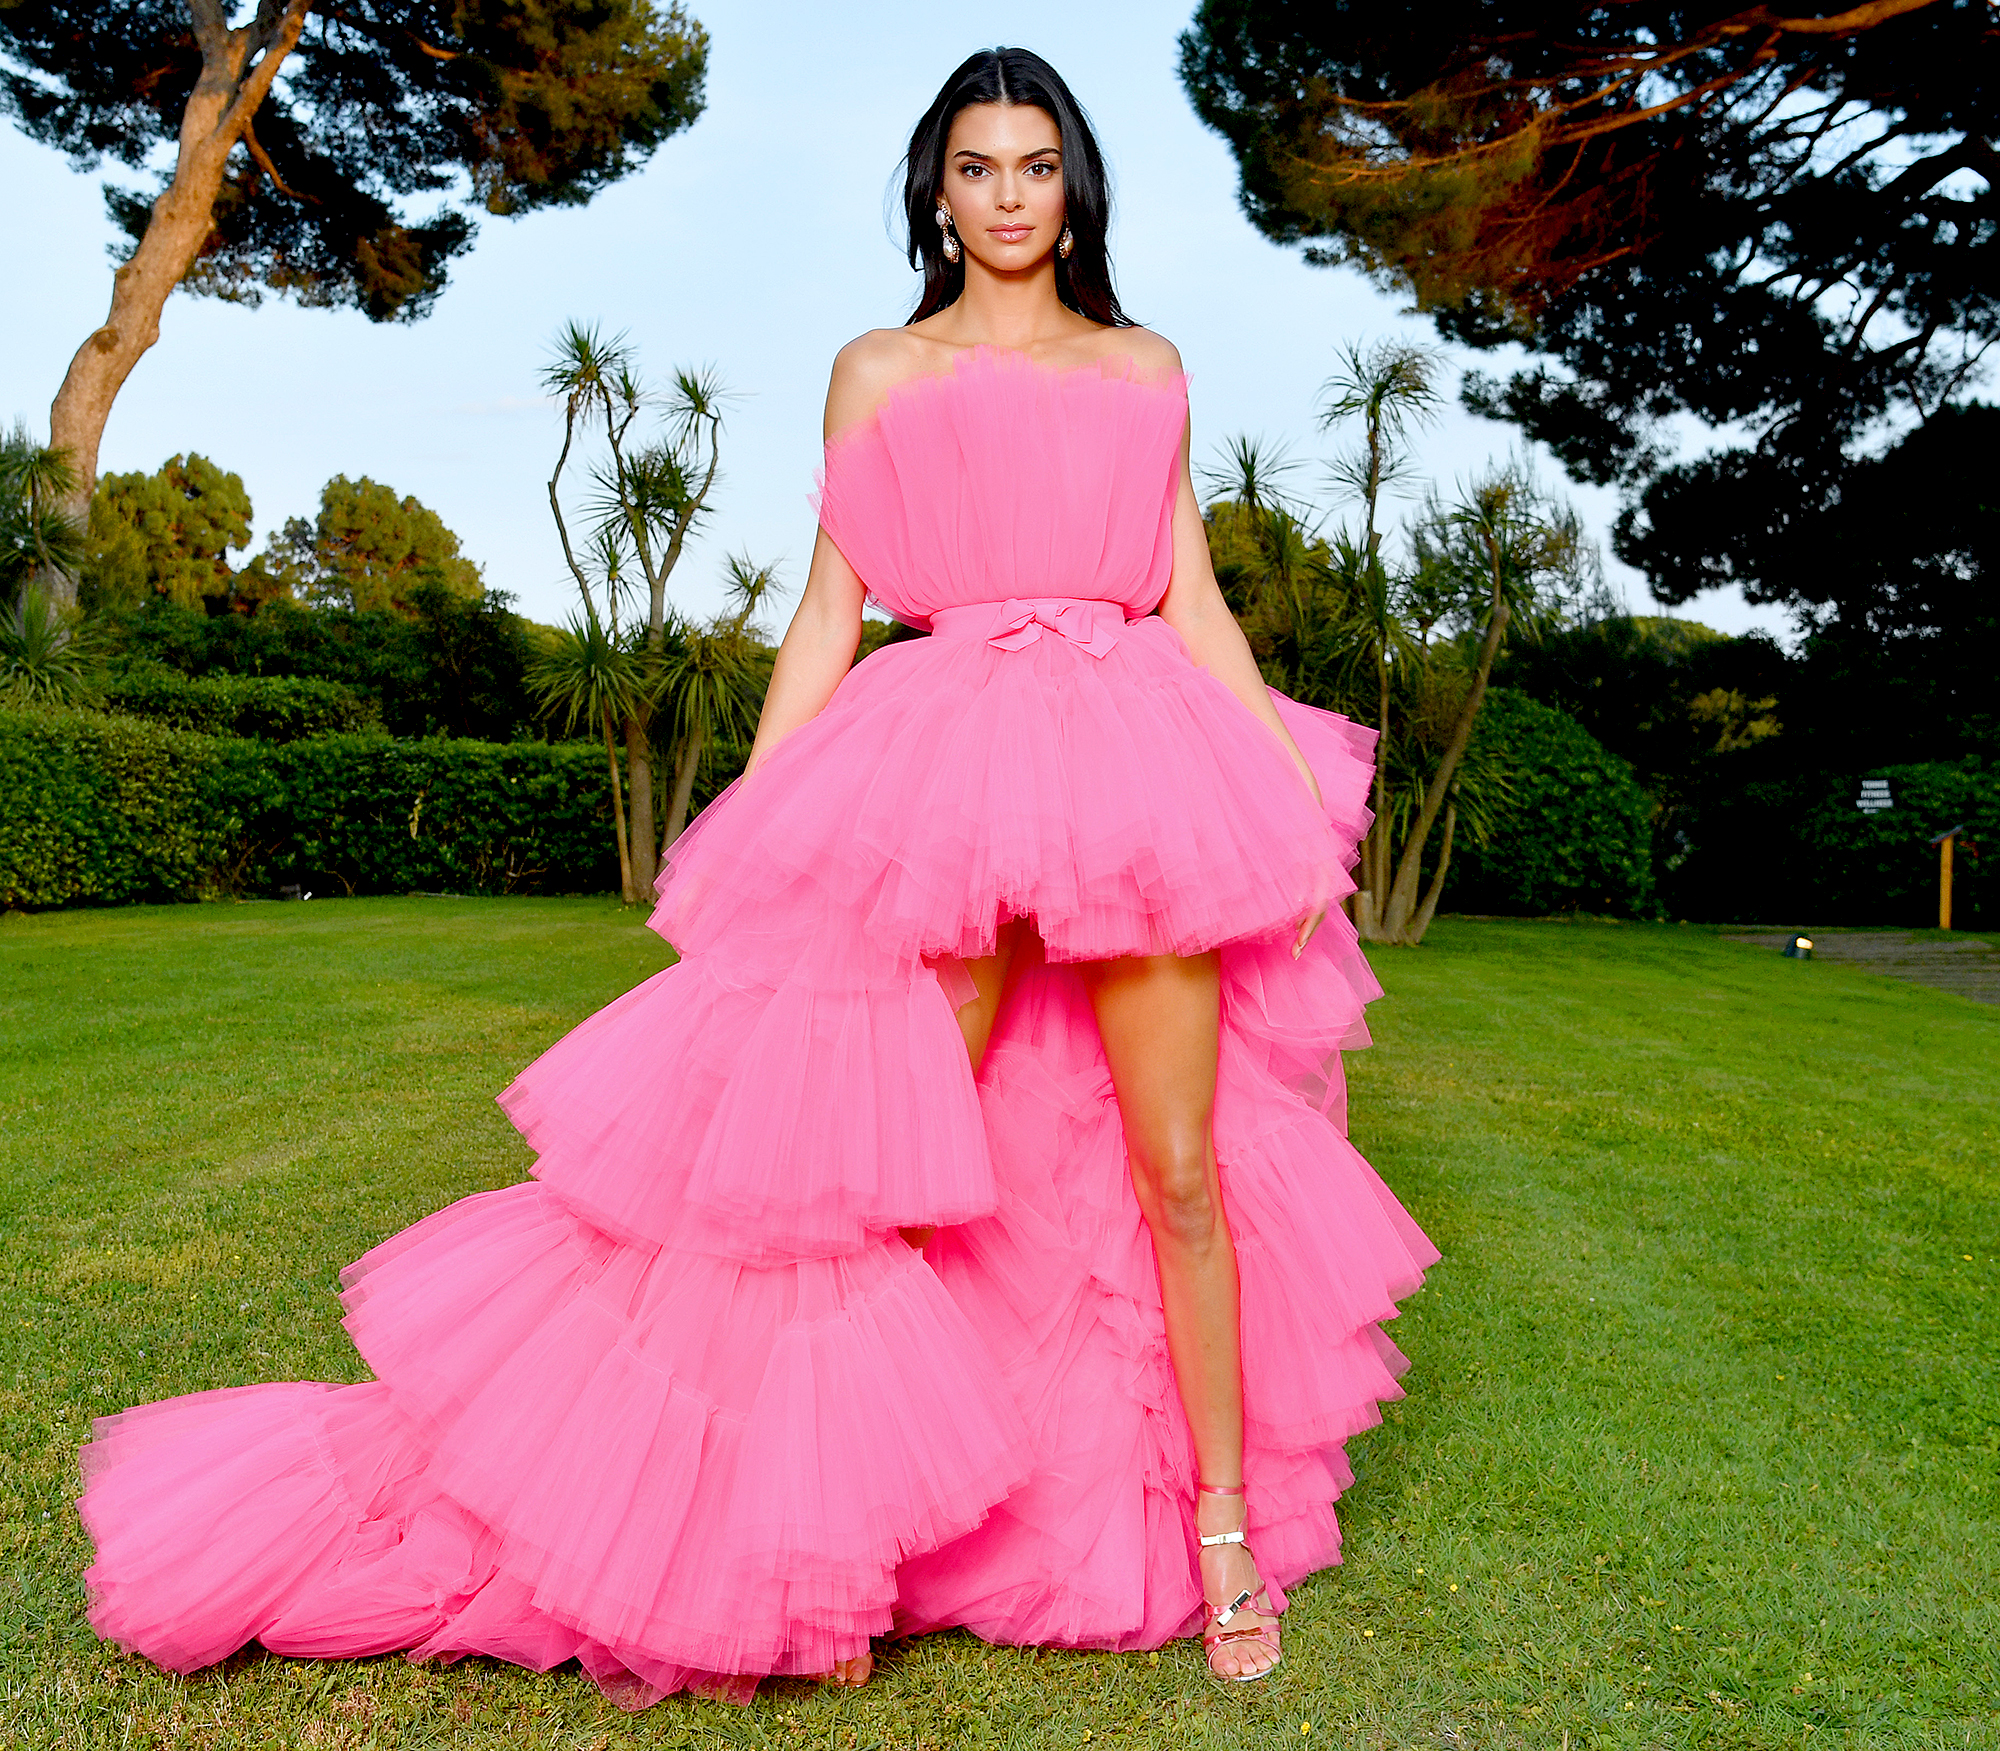 H&M Announced the Giambattista Valli Collaboration By Having Kendall Jenner Wear It to the Cannes Film Festival